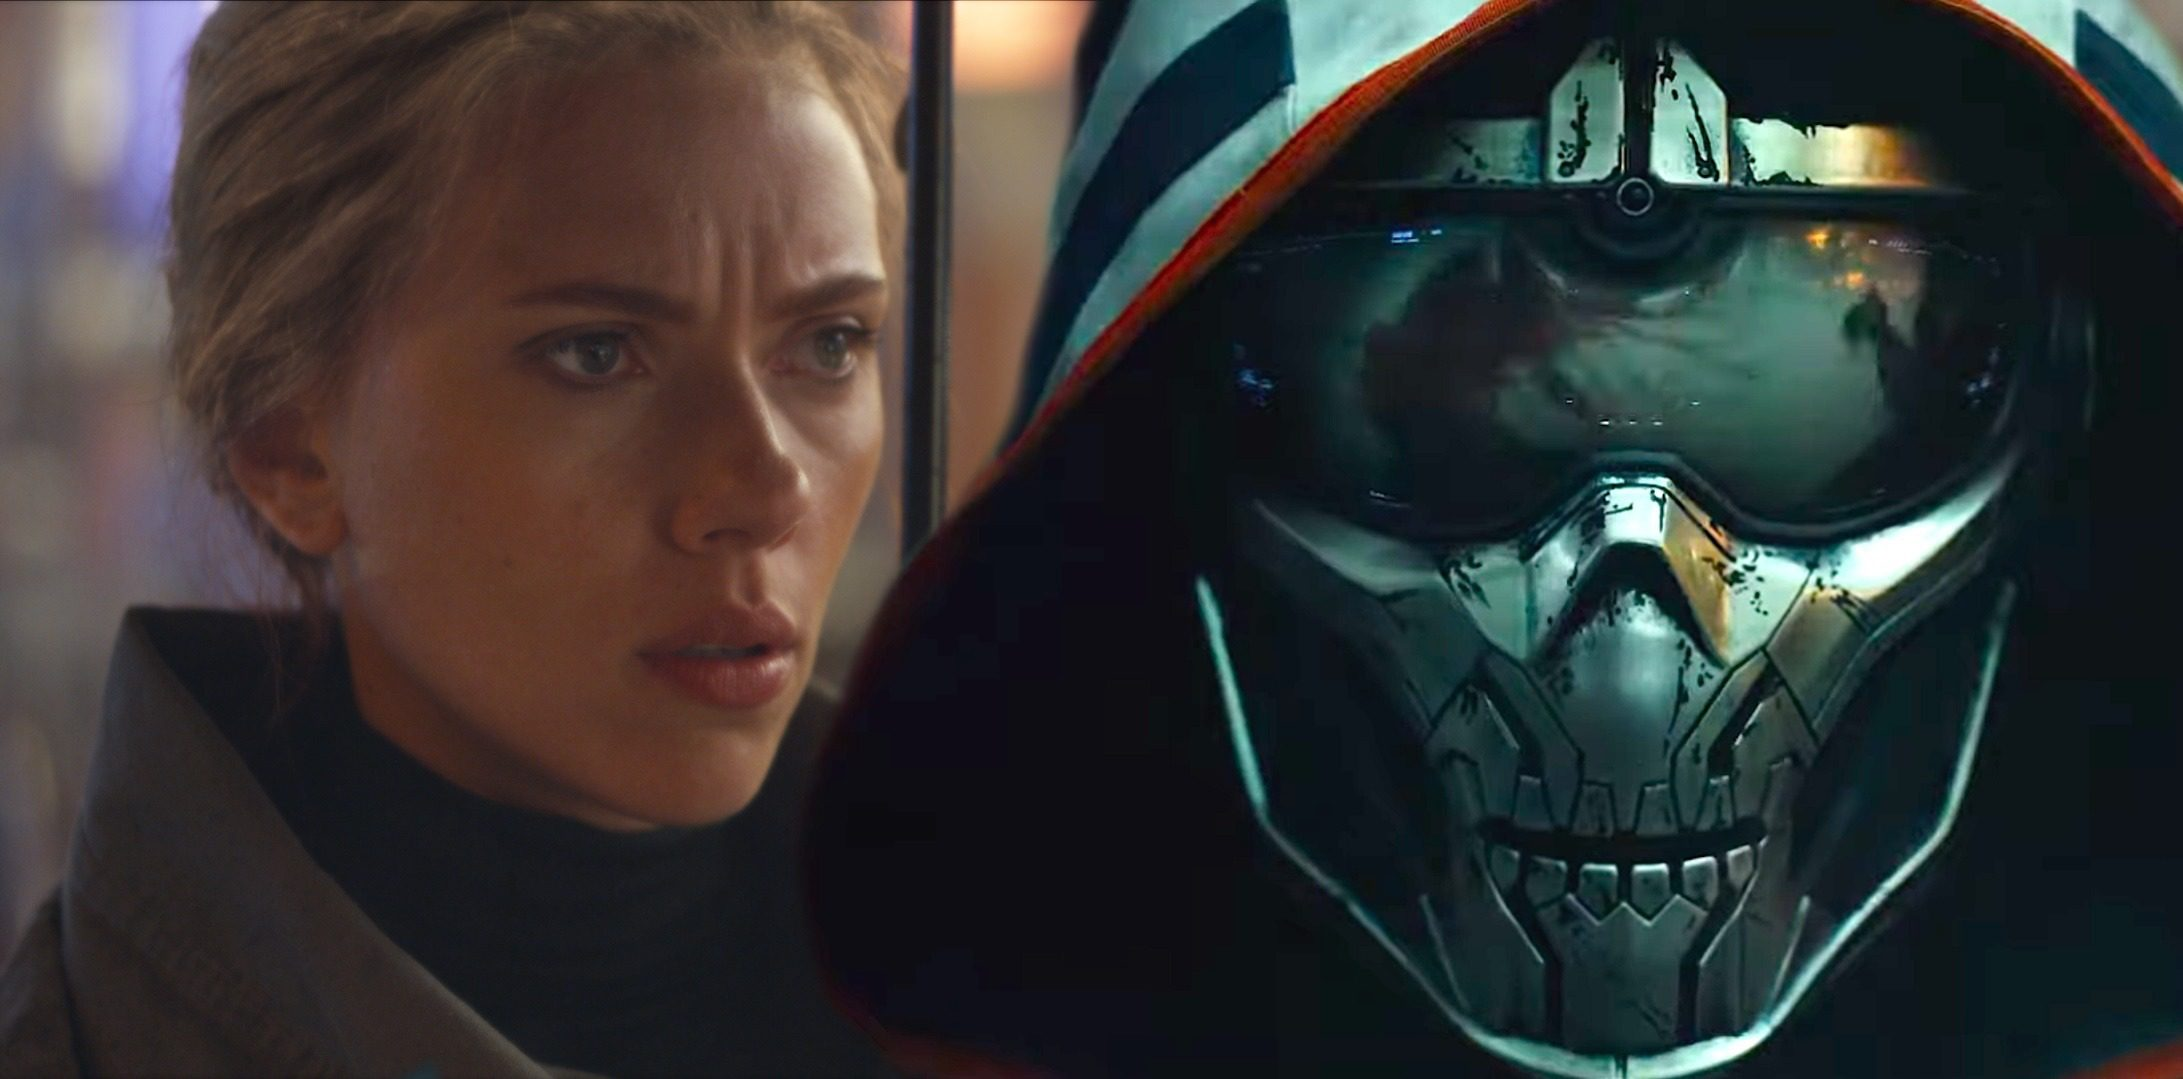 Why I'm Worried About These Black Widow Characters